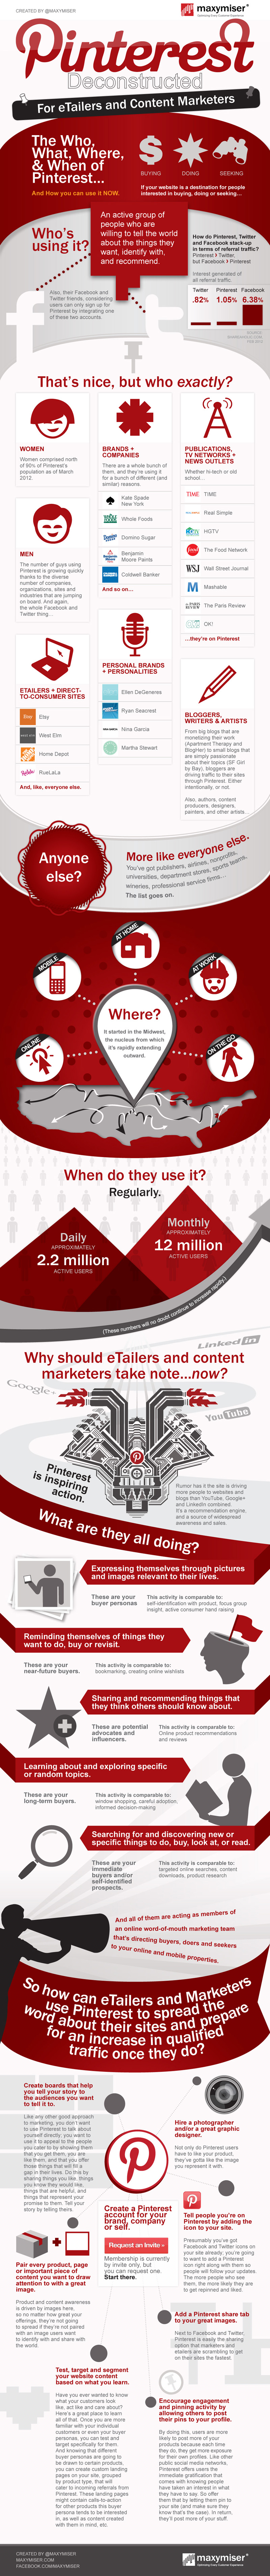 Learn How Pinterest Can Turn Your Brand Red Hot [INFOGRAPHIC]